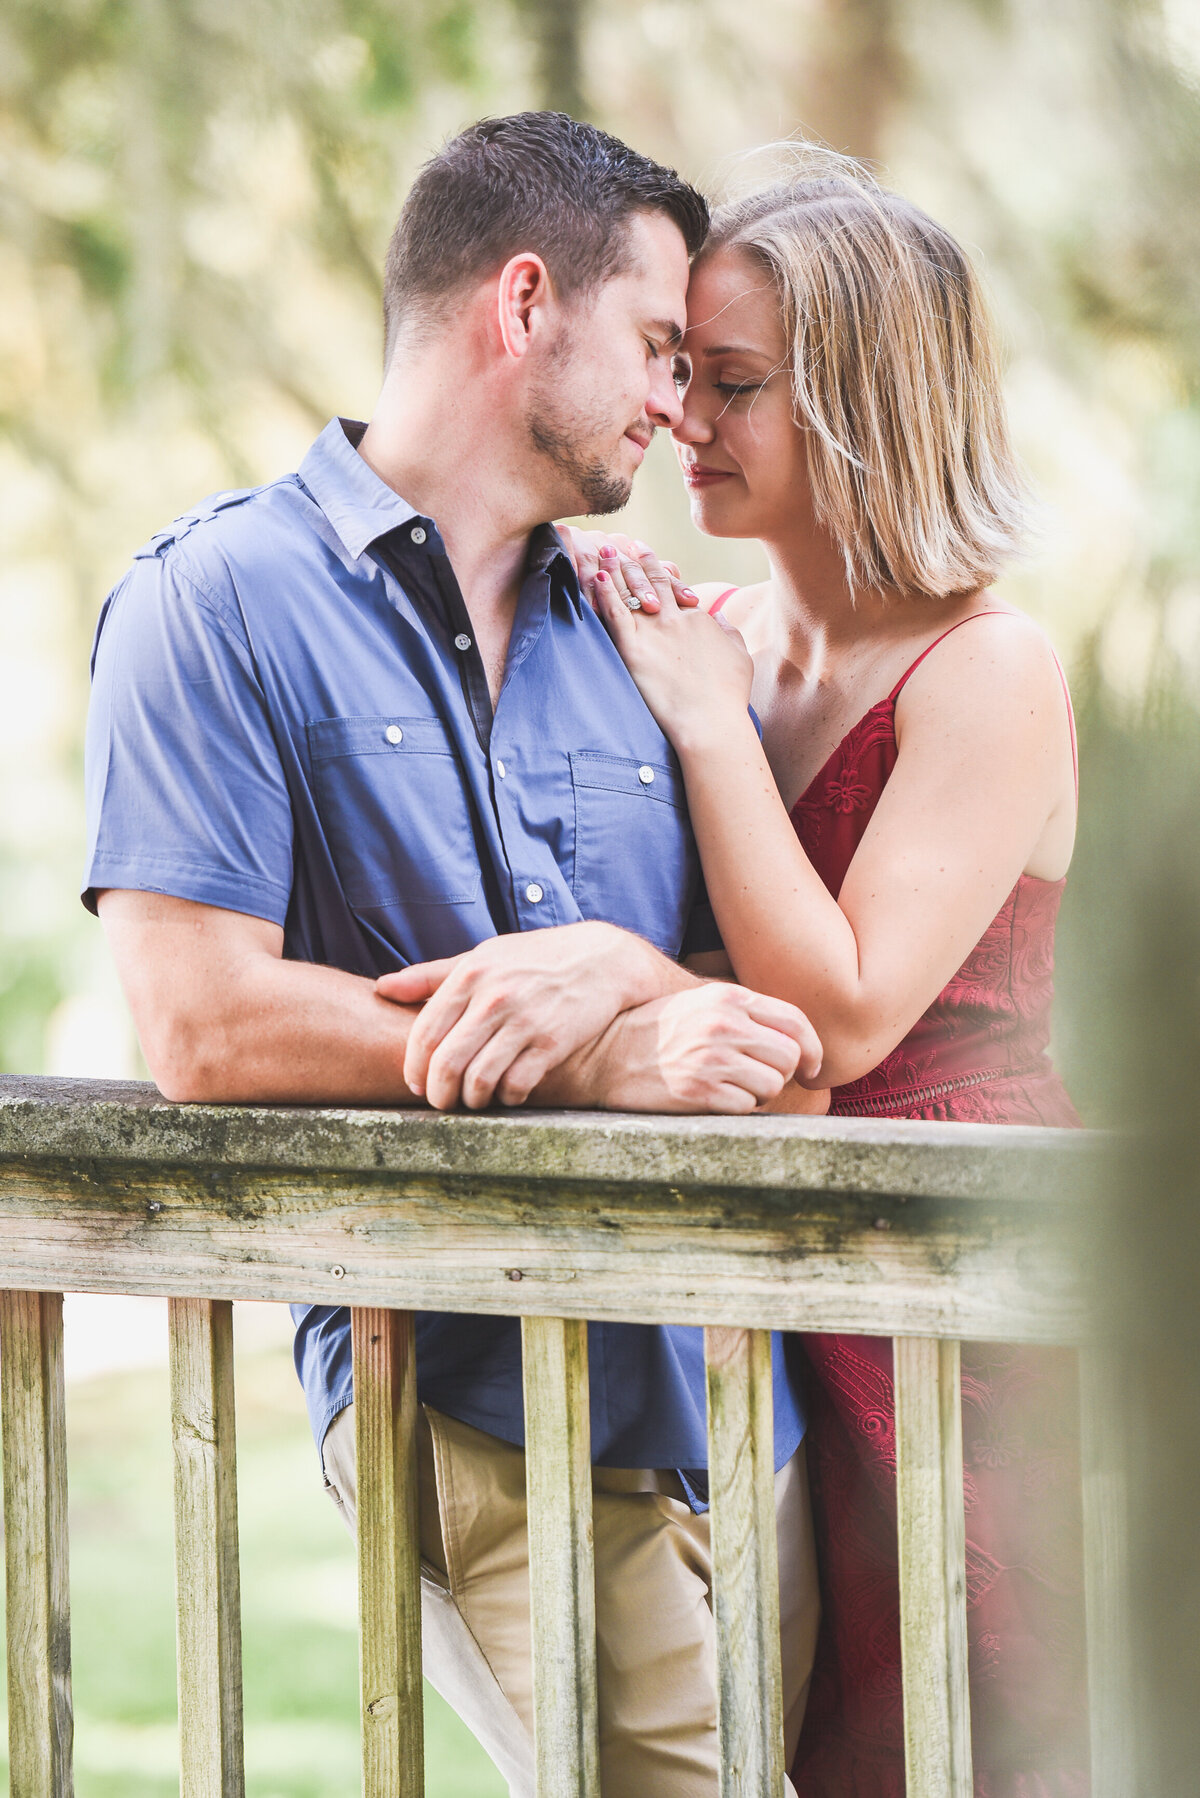 Amanda & Mike_Engagement Session_41_©remainphotograpy